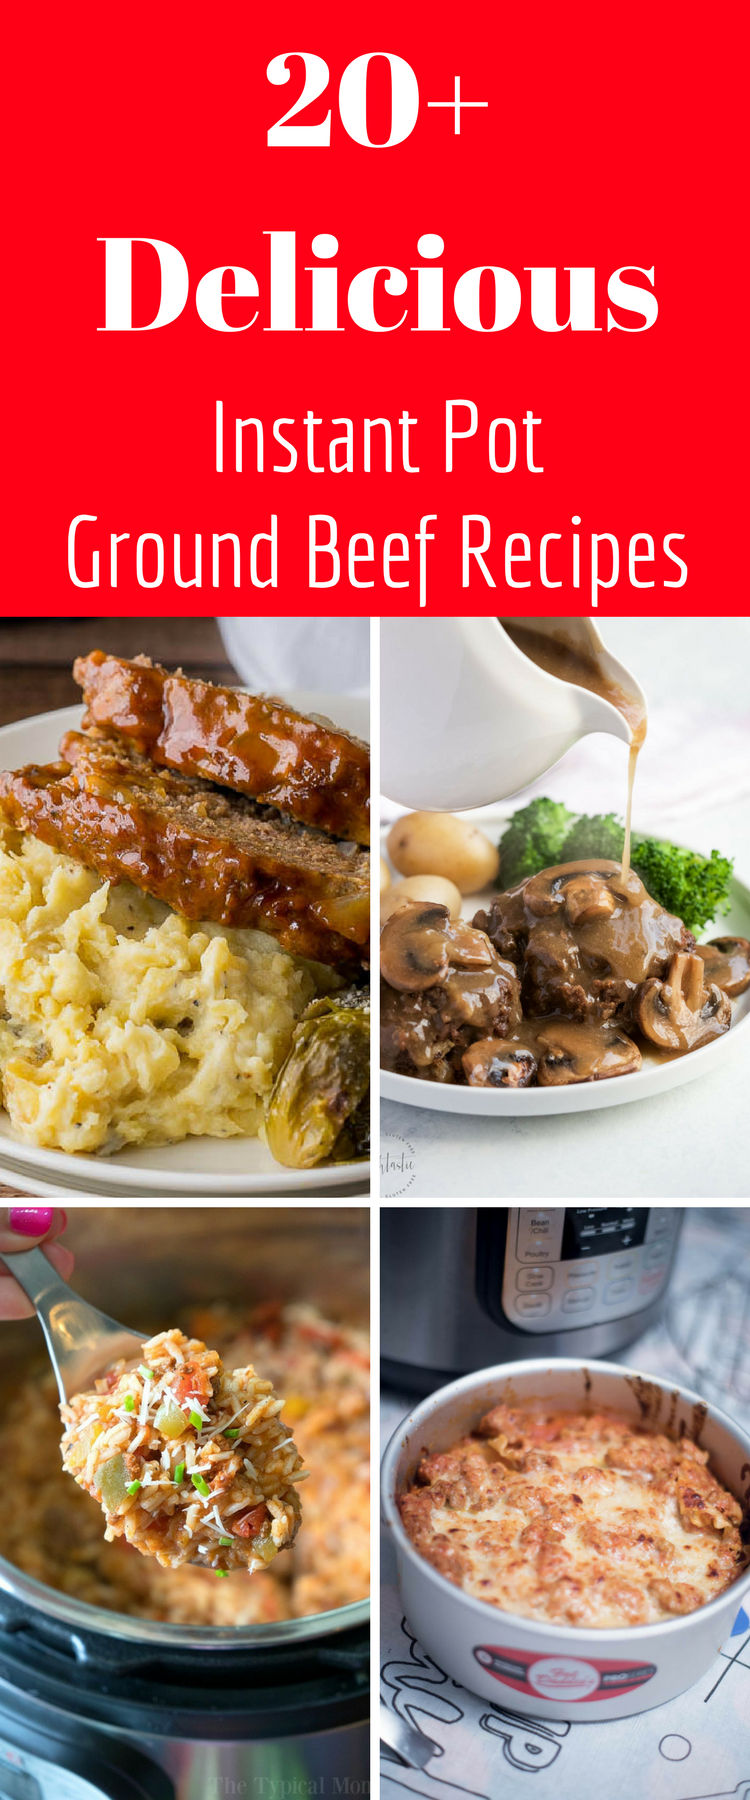 Looking For Instant Pot Ground Beef Recipes Here Are Over 20 Amazing Ground Beef R Beef Recipe Instant Pot Easy Instant Pot Recipes Instant Pot Dinner Recipes